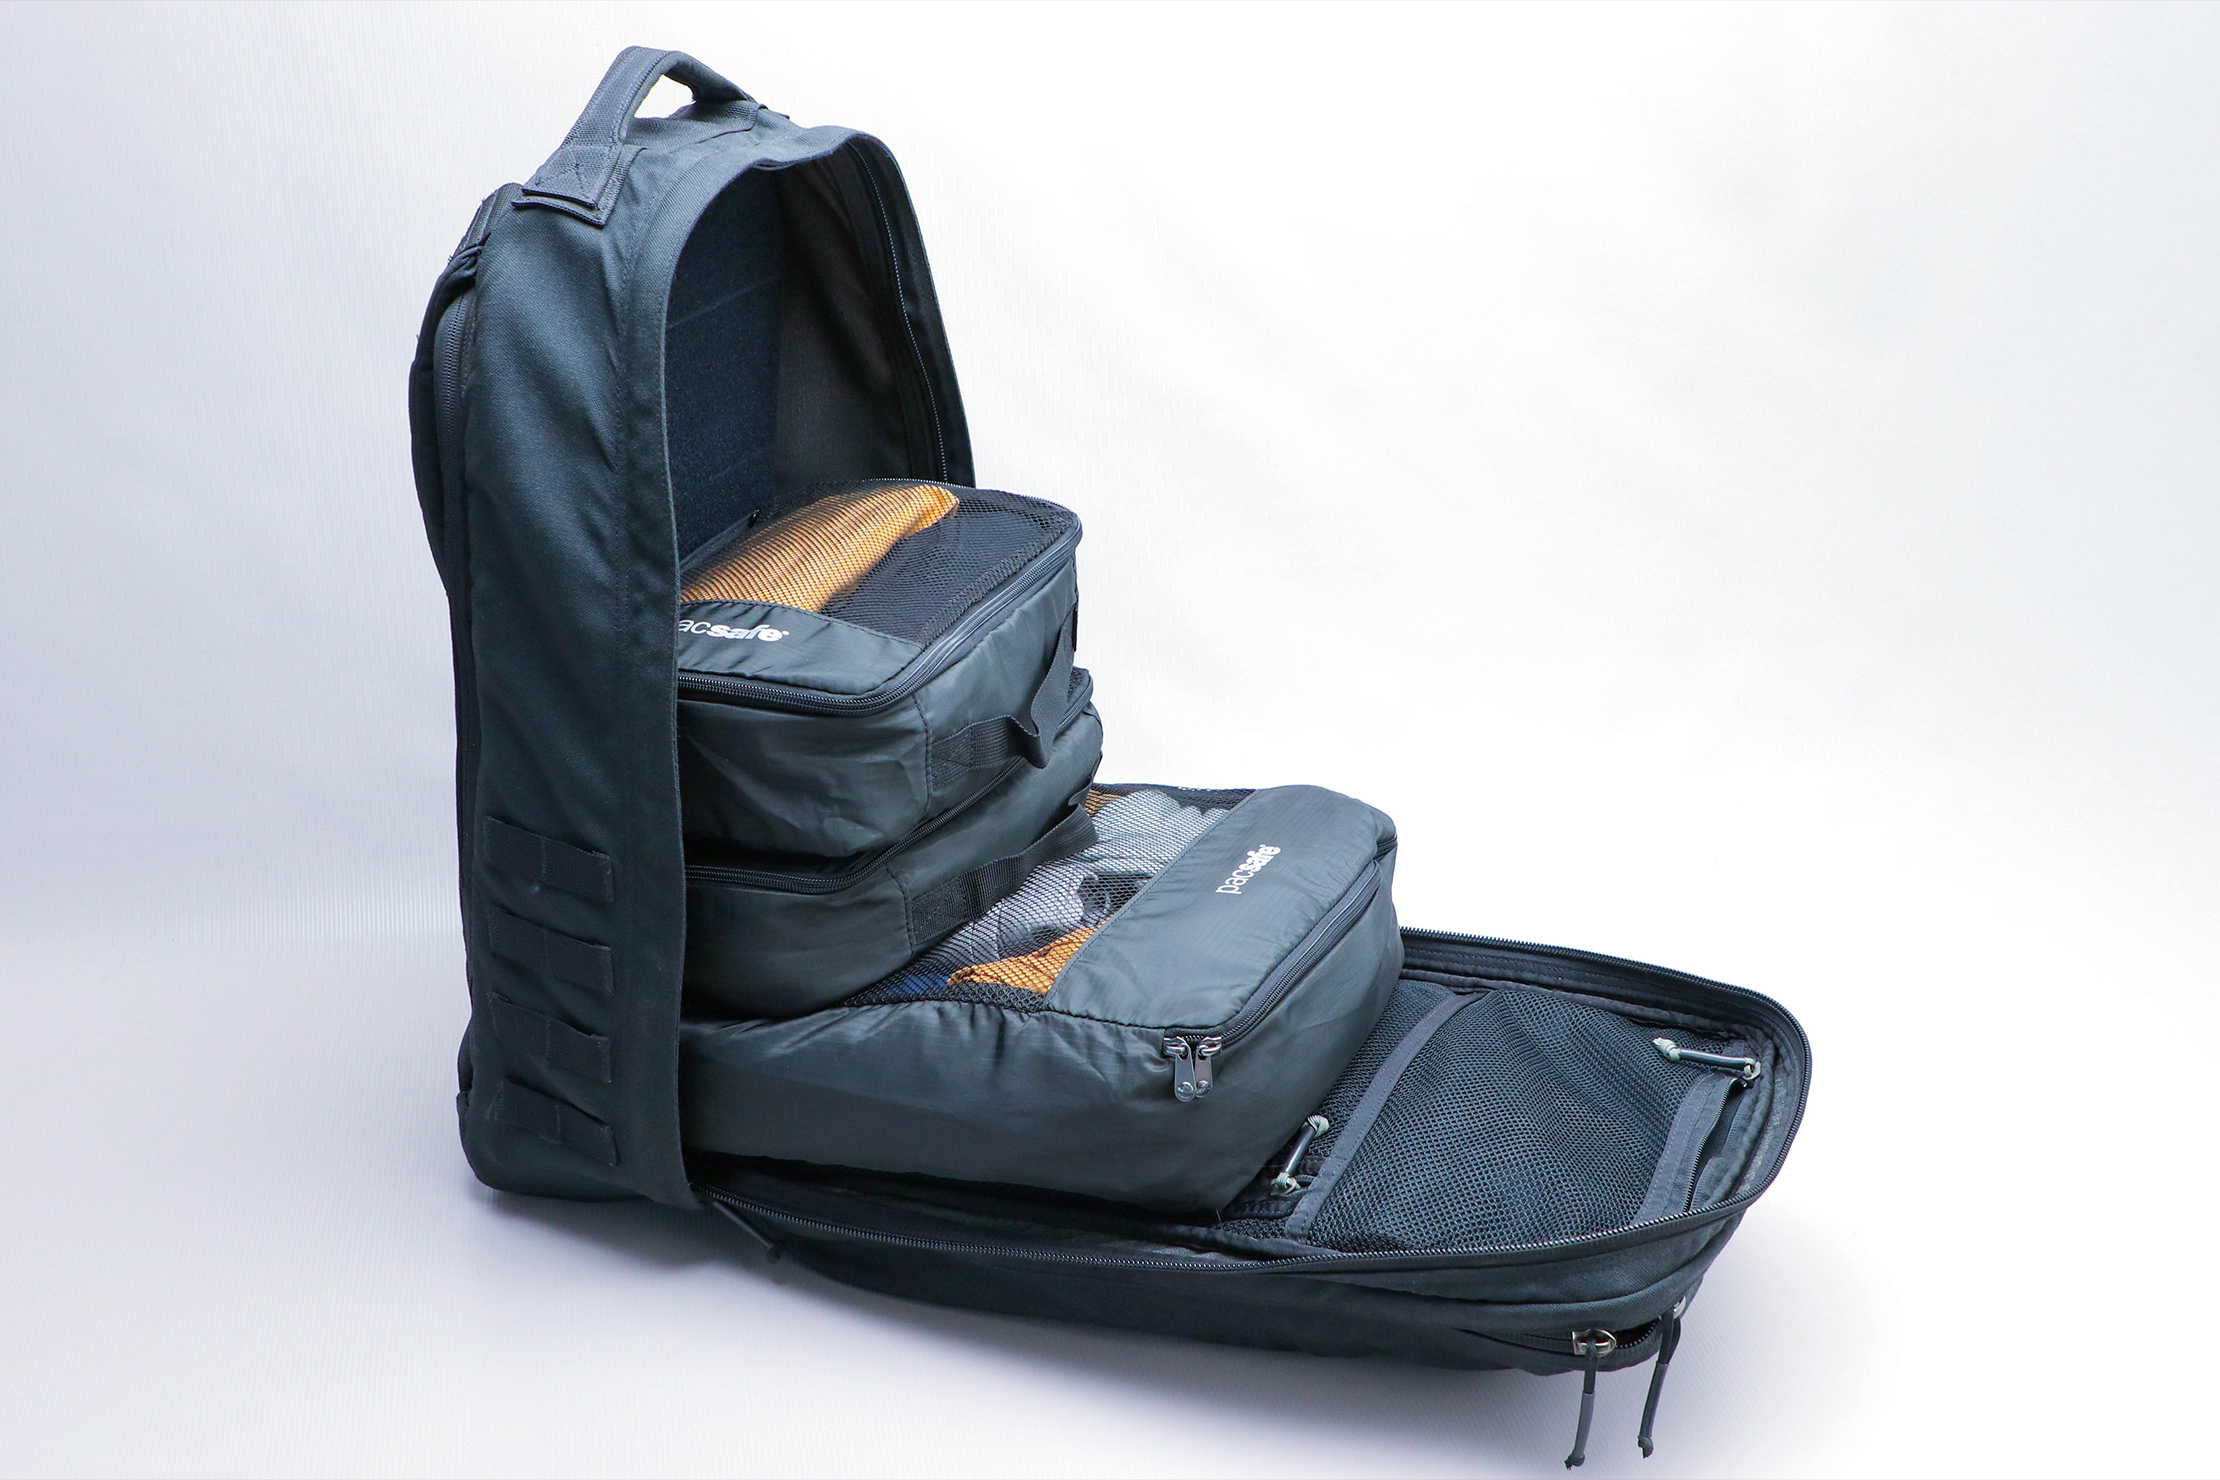 Pacsafe Travel Packing Cubes in a bag 2